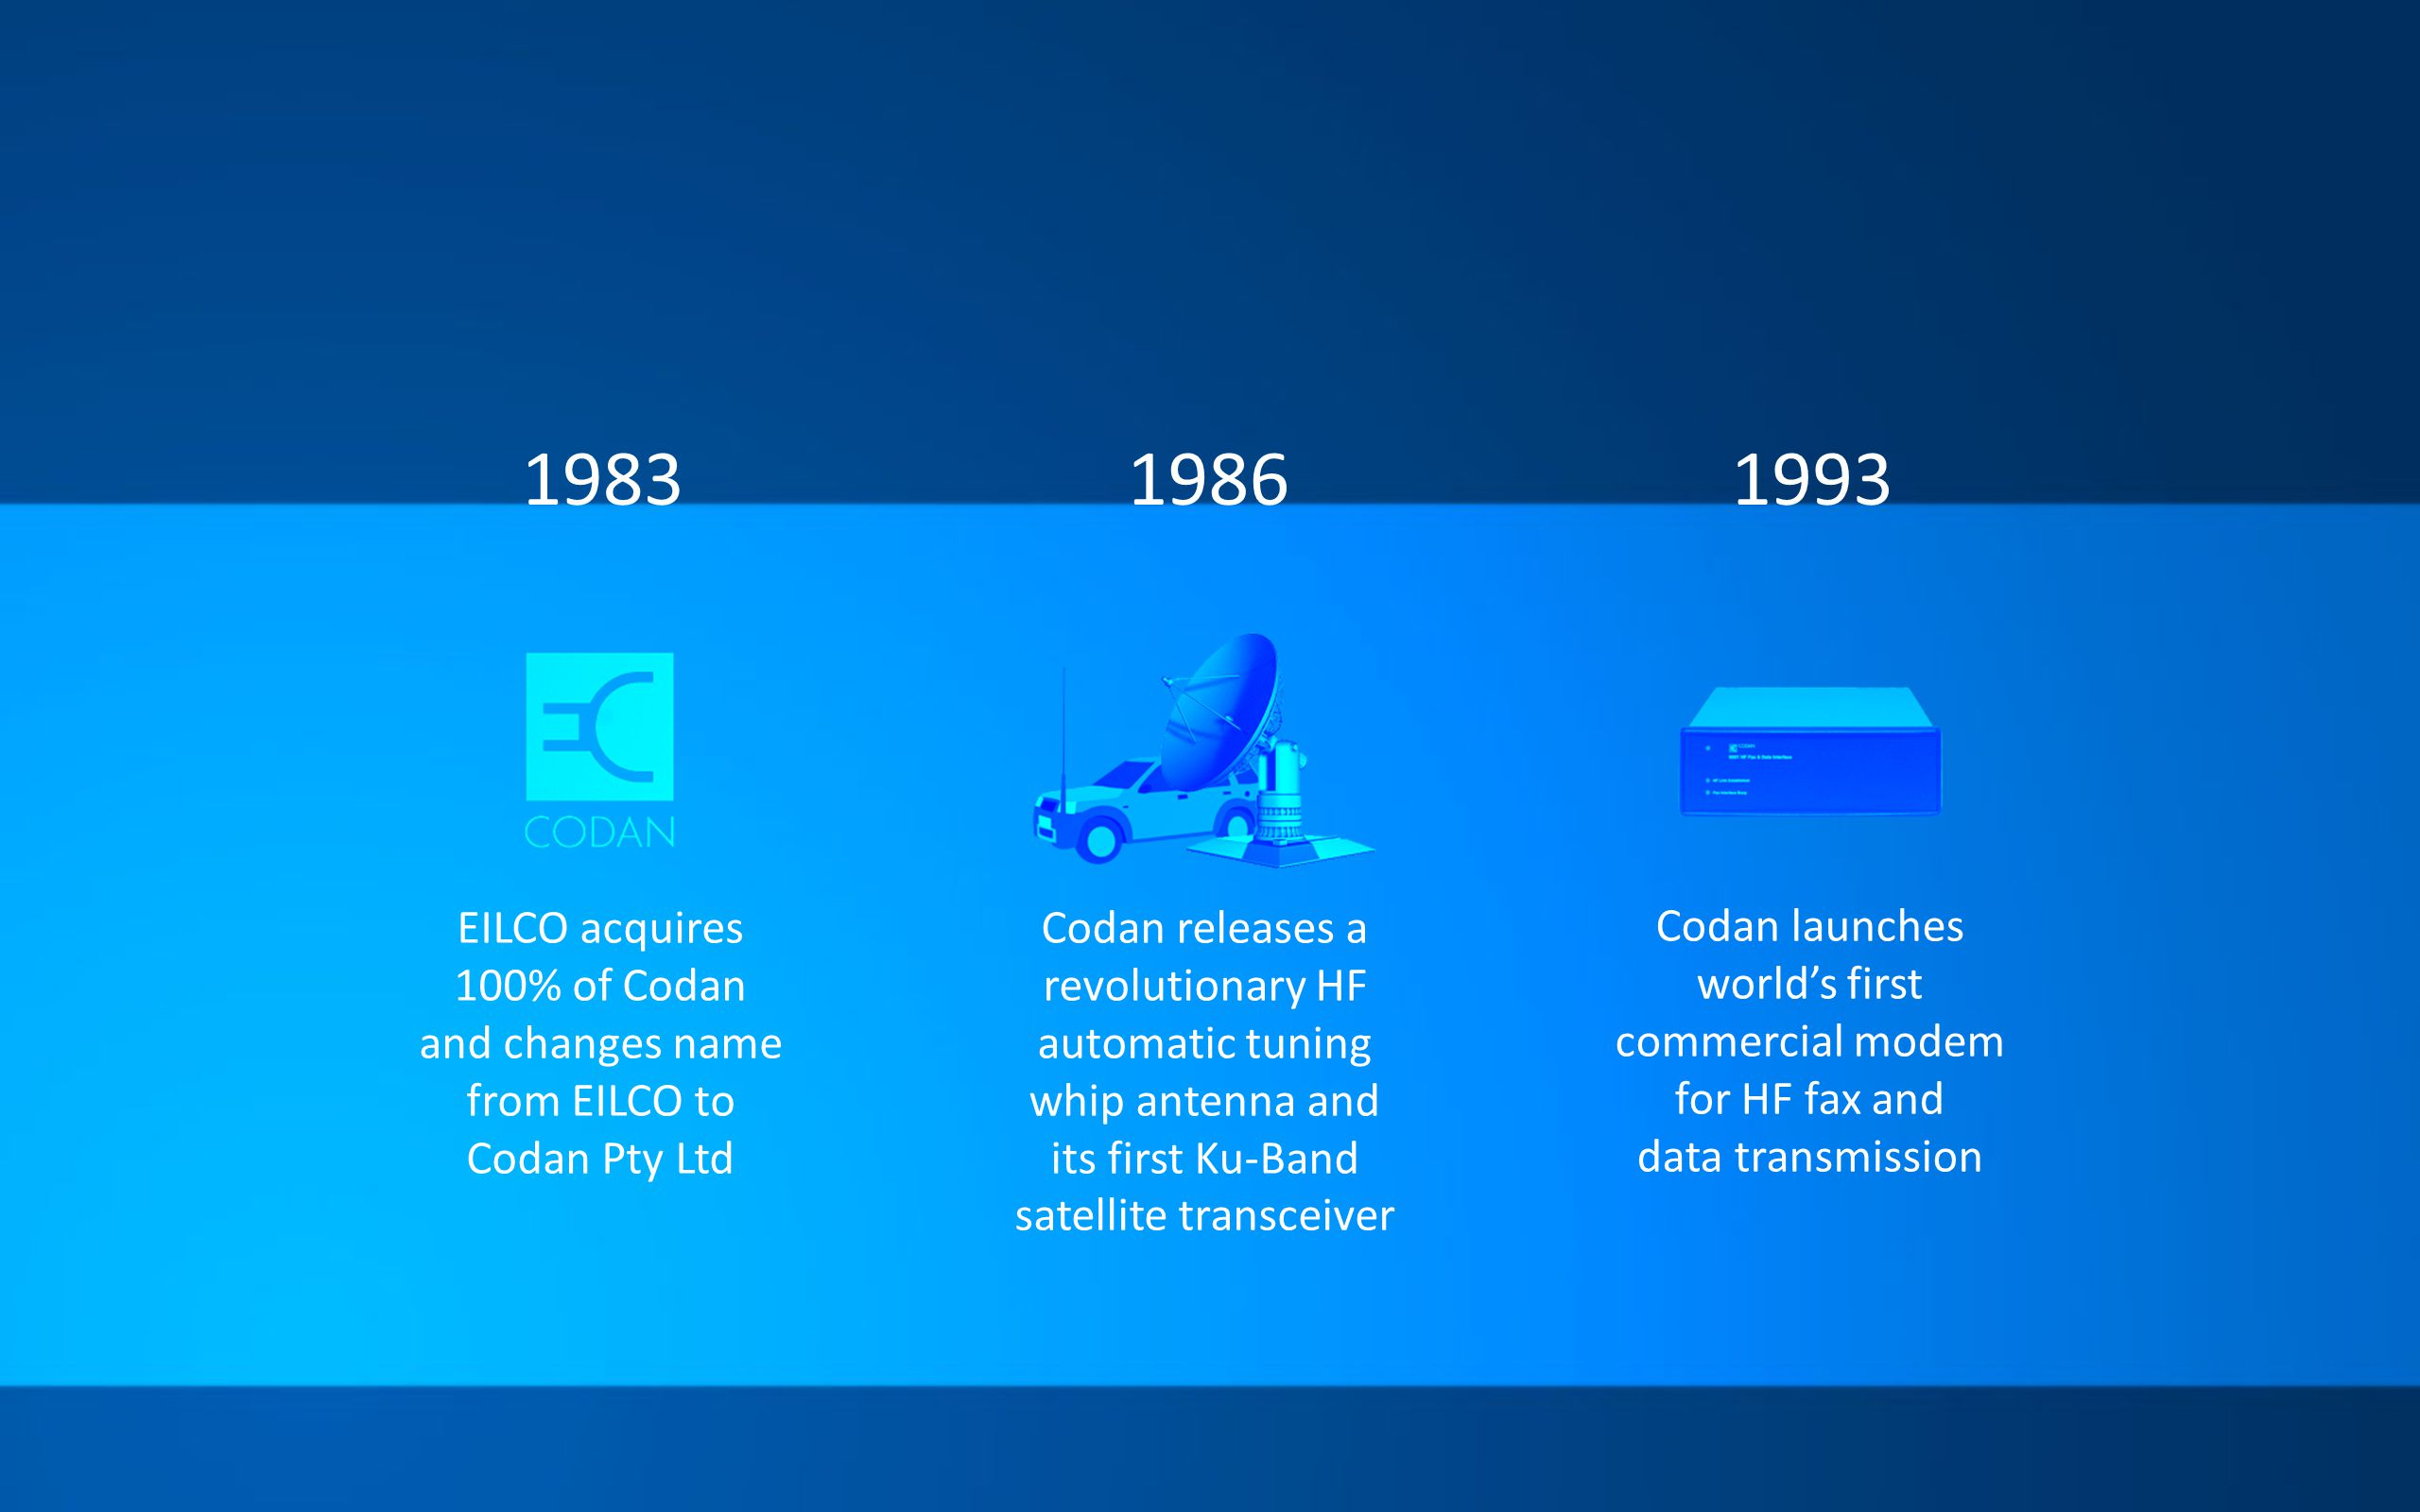 198319861993 EILCO acquires 100% of Codan and changes name from EILCO to Codan Pty Ltd Codan releases a revolutionary HF automatic tuning whip antenna and its first Ku-Band satellite transceiver Codan launches worlds first commercial modem for HF fax and data transmission